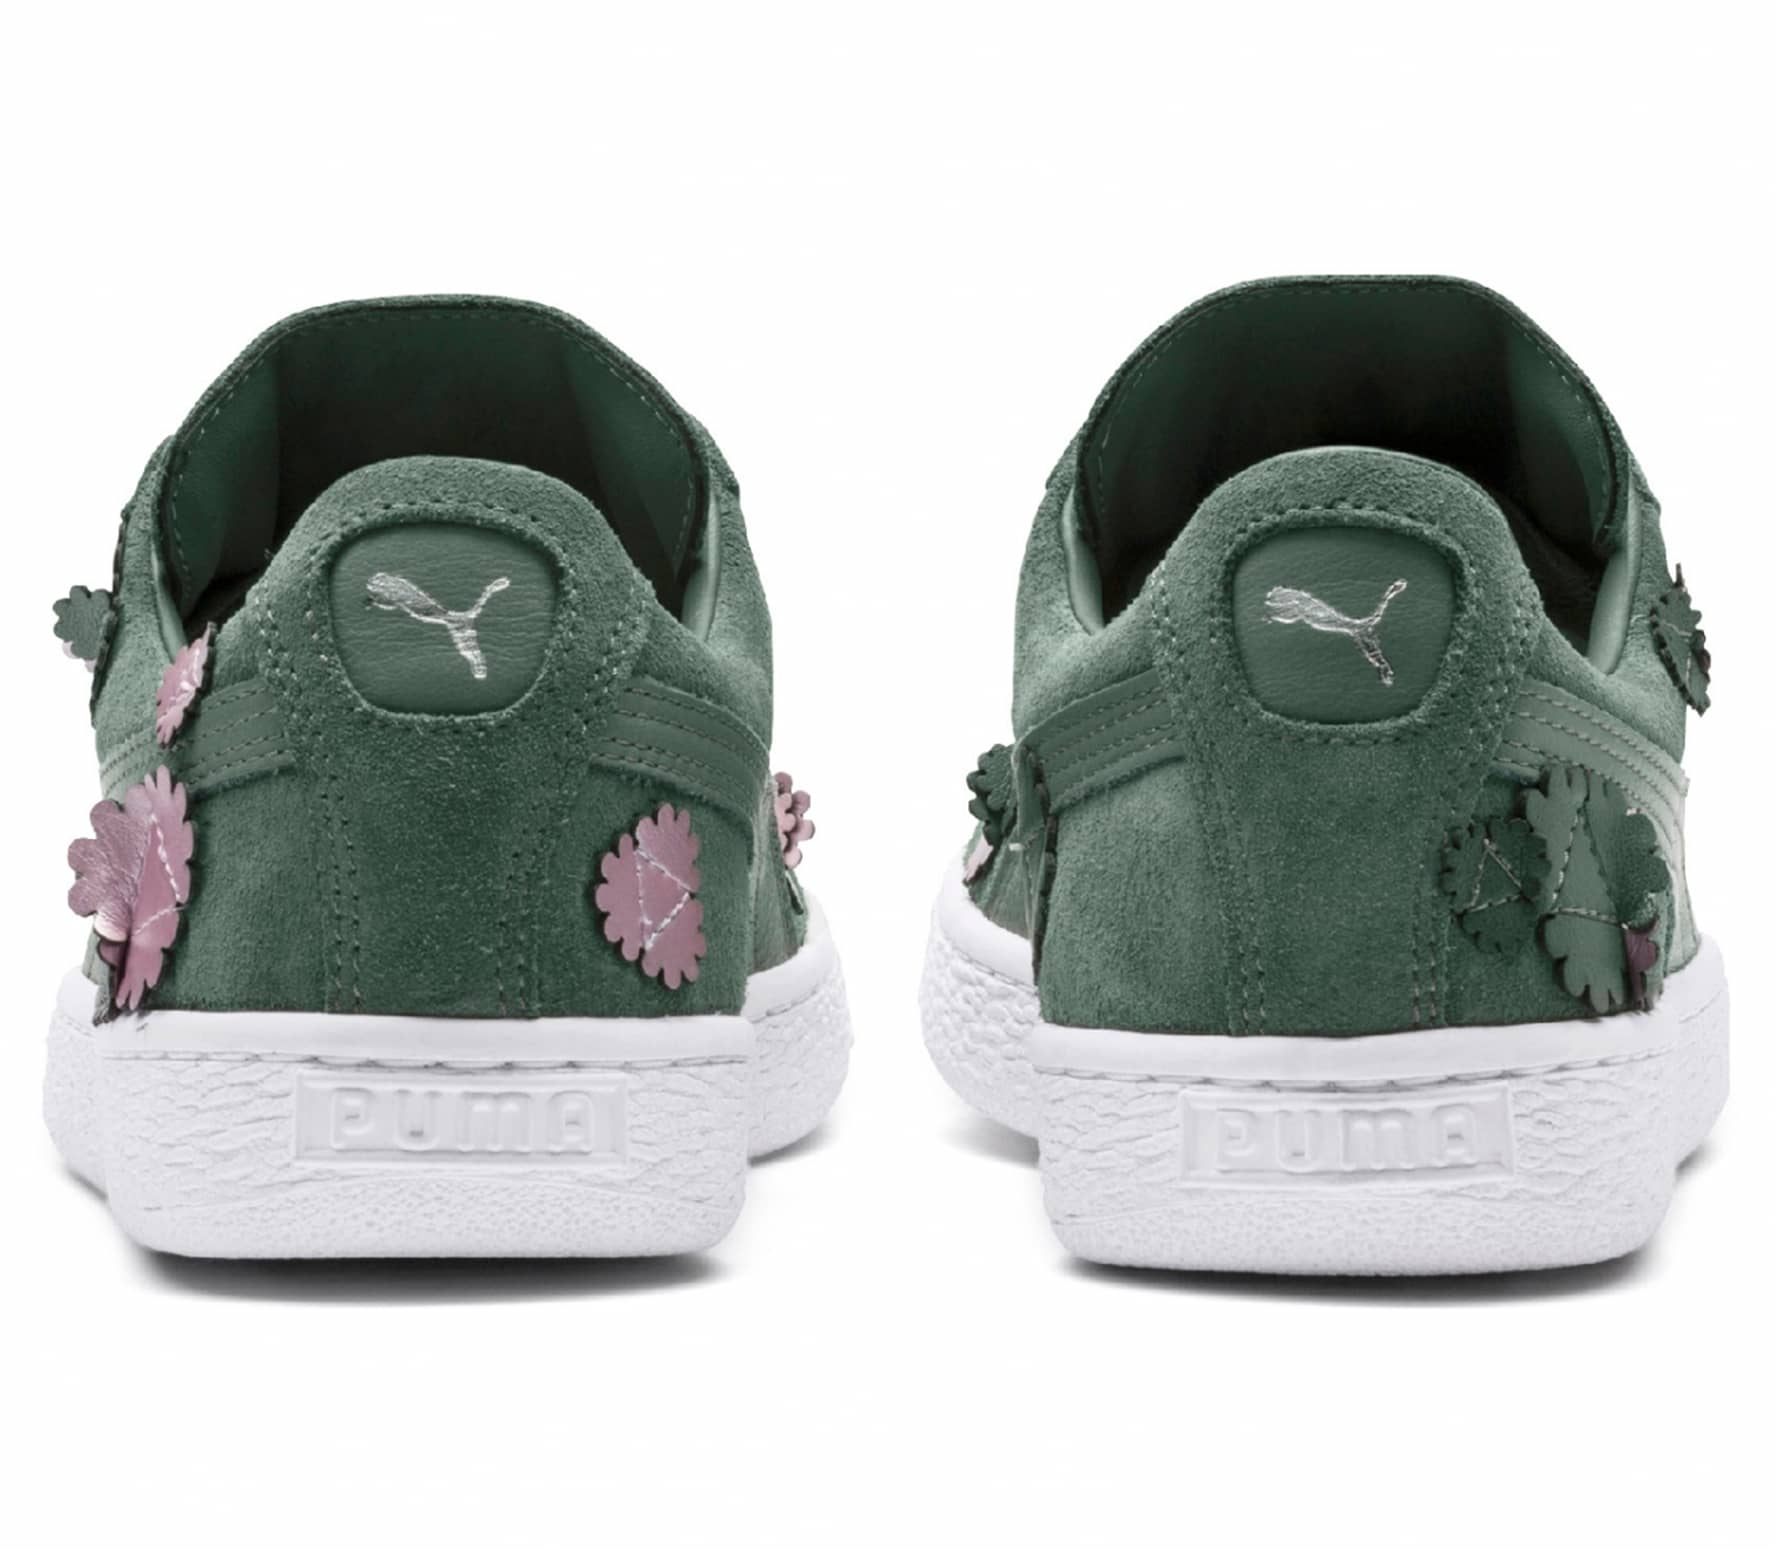 084db98603d1 Puma Suede Classic Aut Bloom women s trainers (olive green) online ...